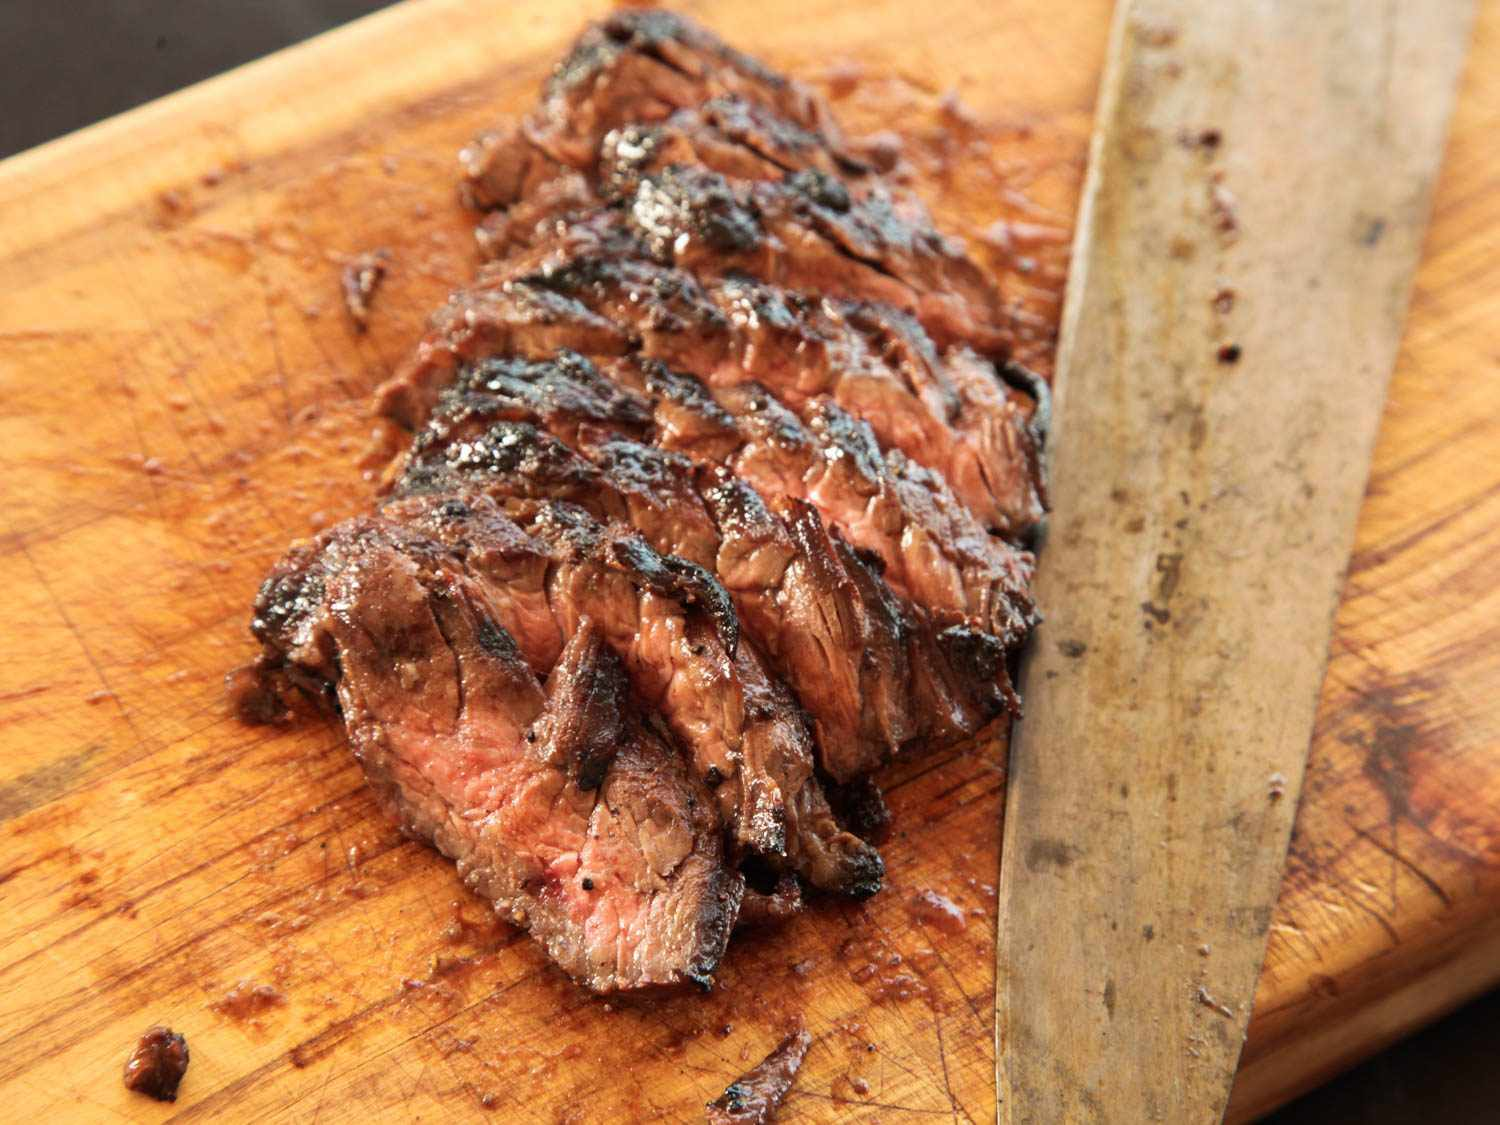 Sliced cooked skirt steak for fajitas slightly fanned out on a wooden cutting board, next to a large knife.